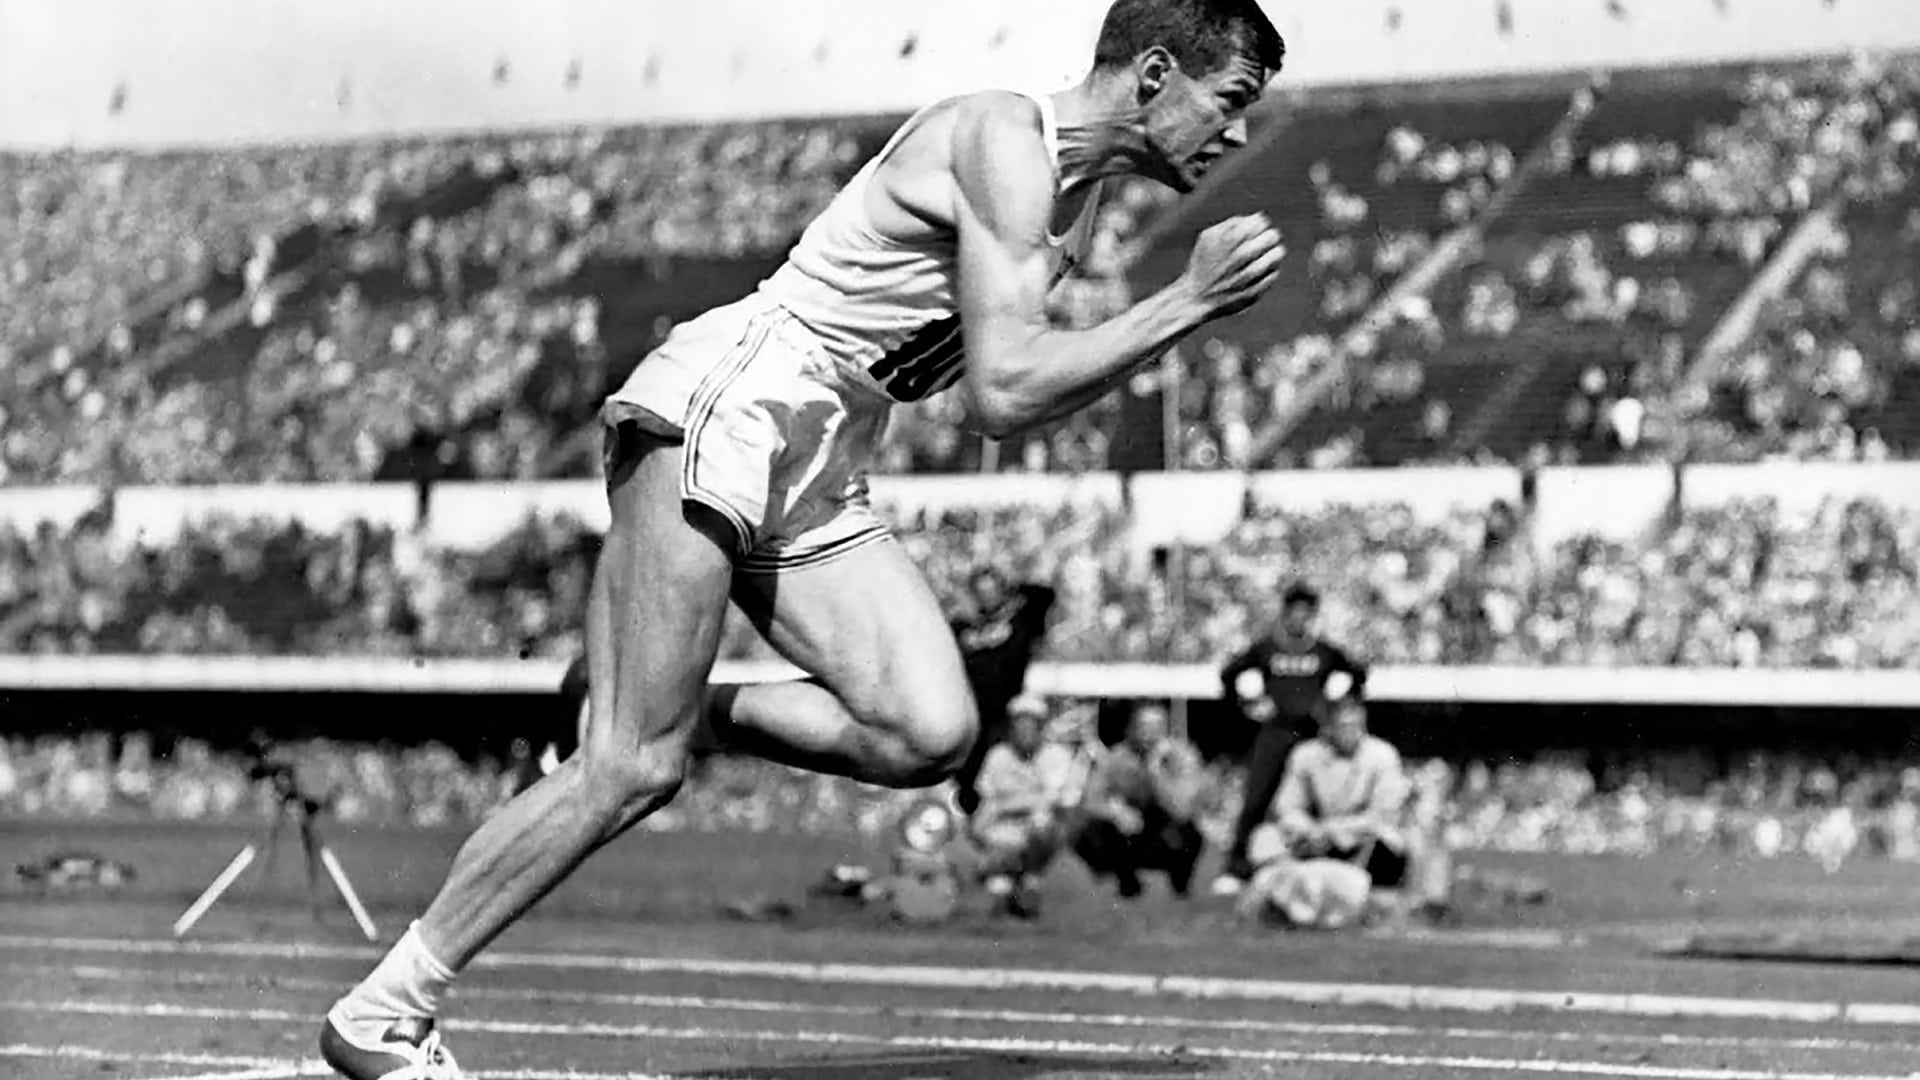 Charlie Moore pumps his arms as he sprints around the track